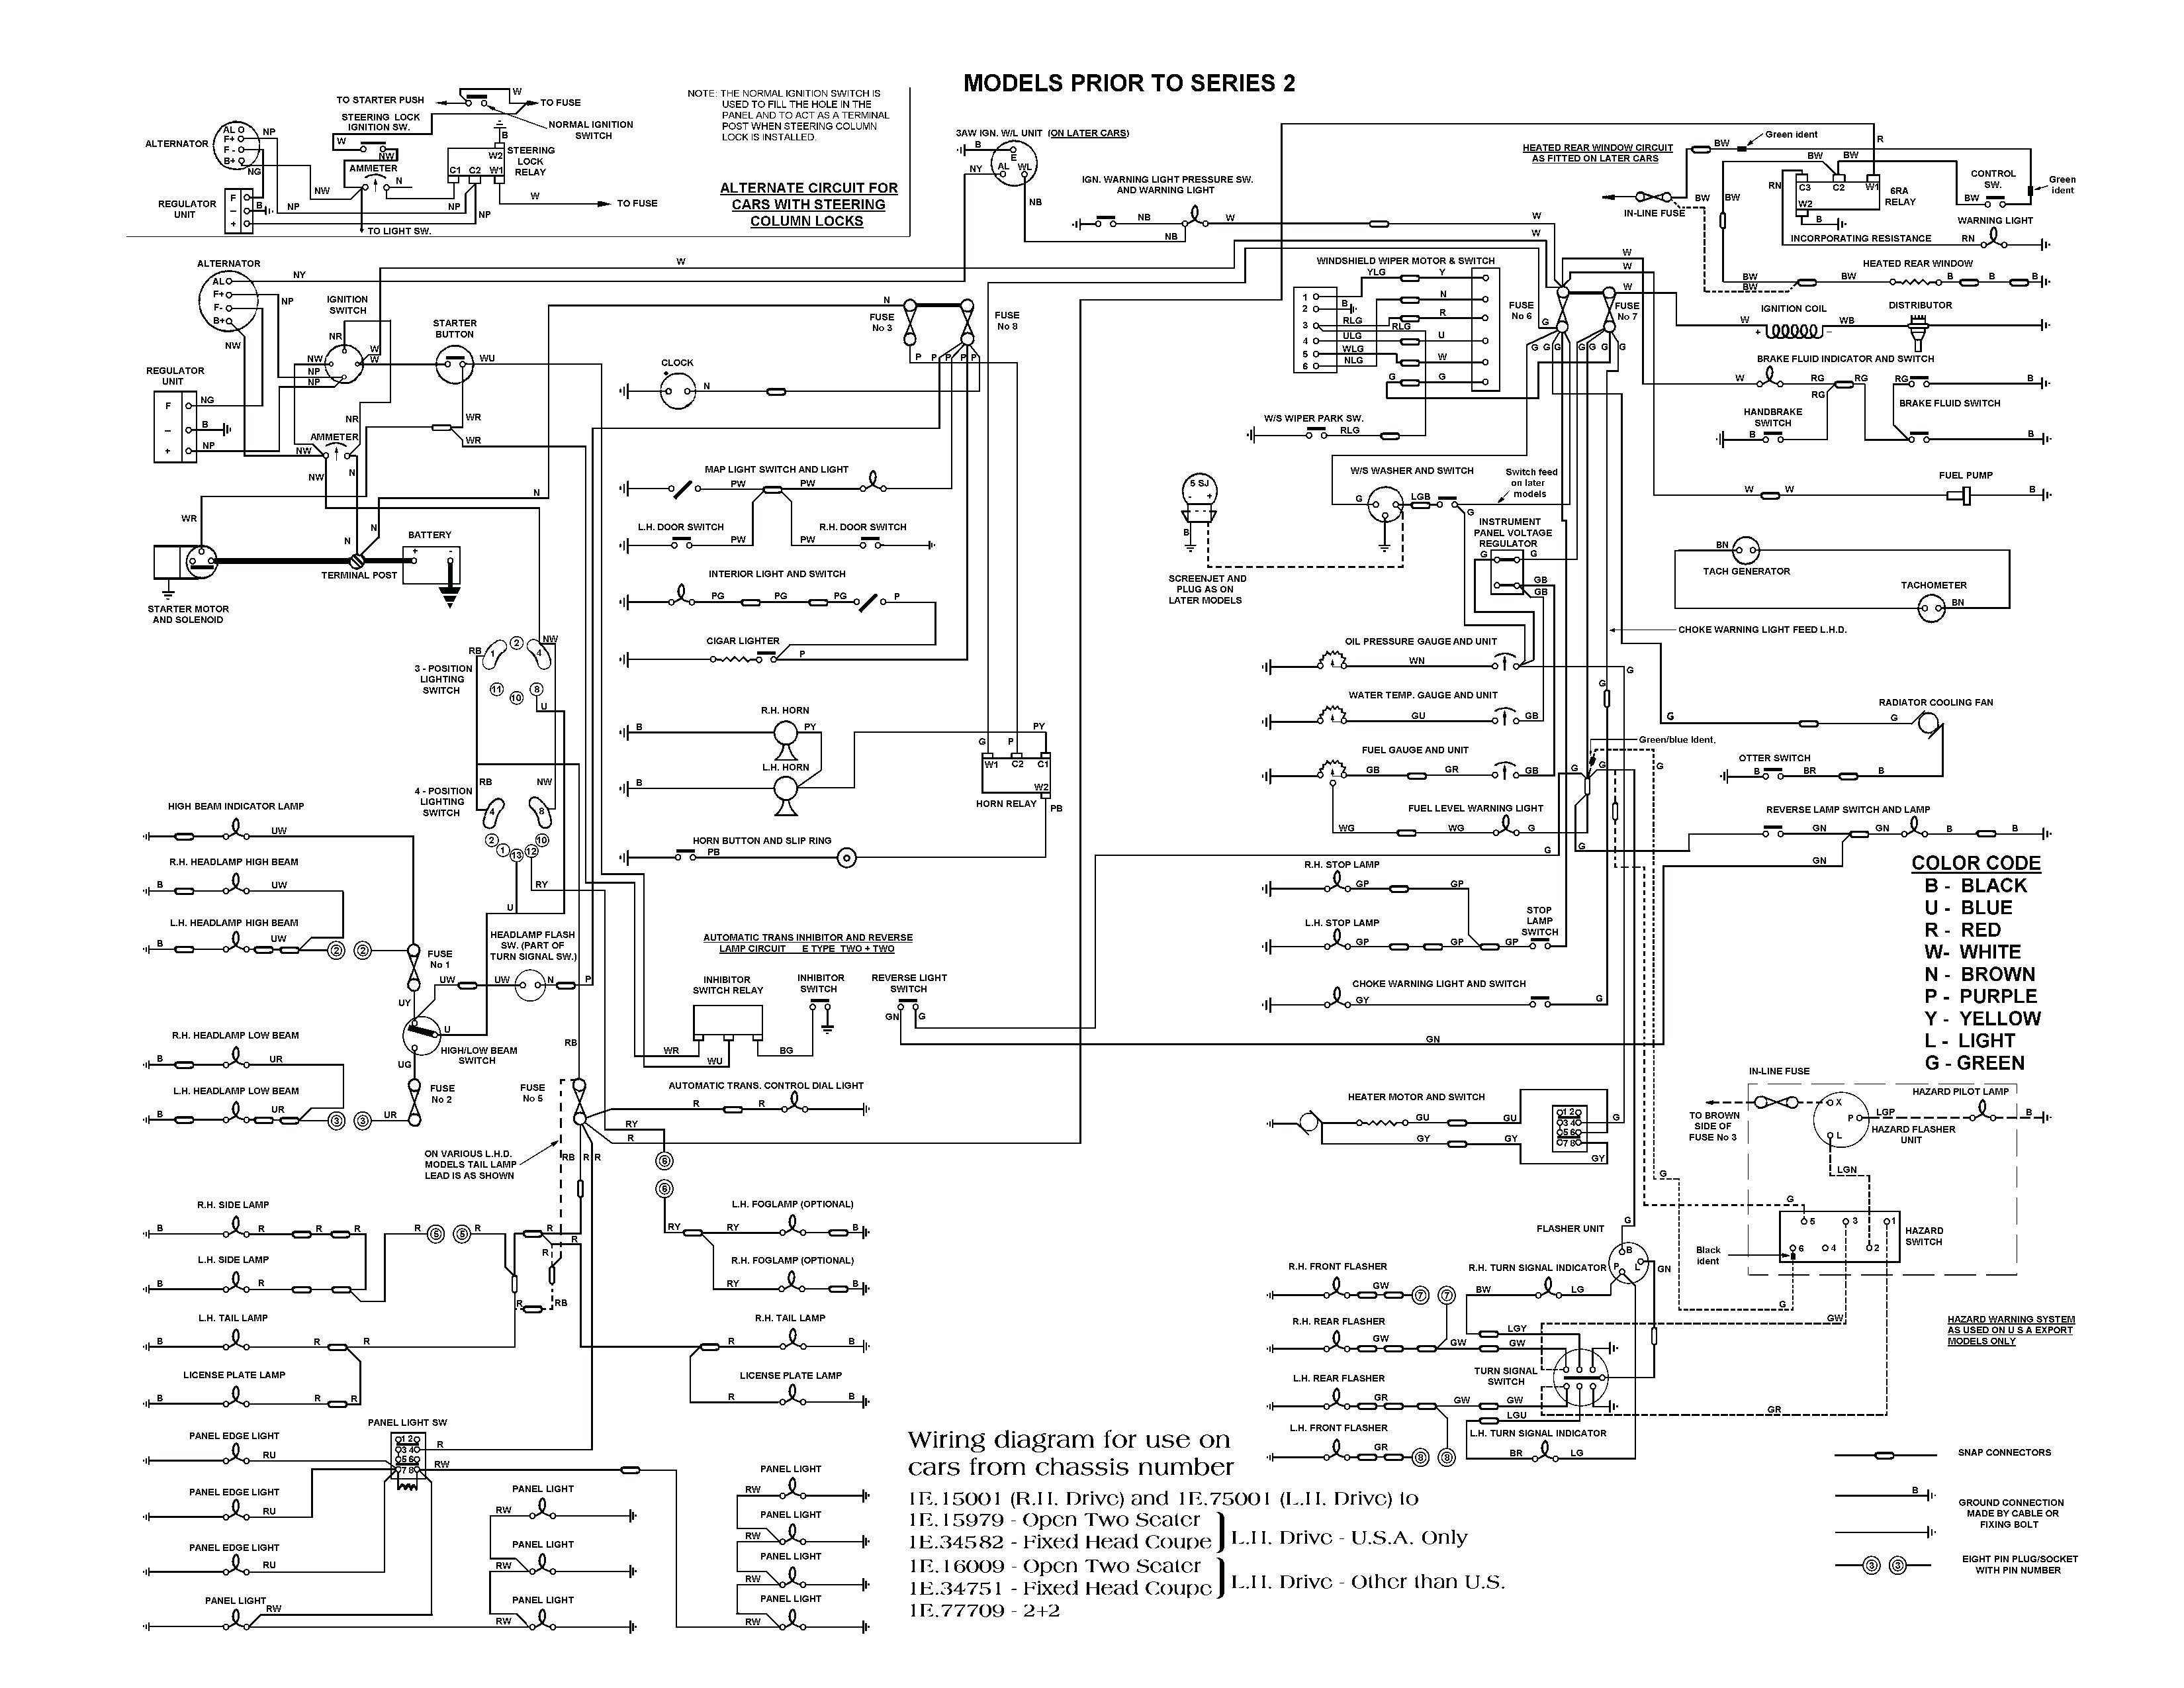 aircraft wiring diagram software Download-Aircraft Wiring Diagram Legend Best Beautiful Automotive Wiring Diagram Symbols Wiring 3-e